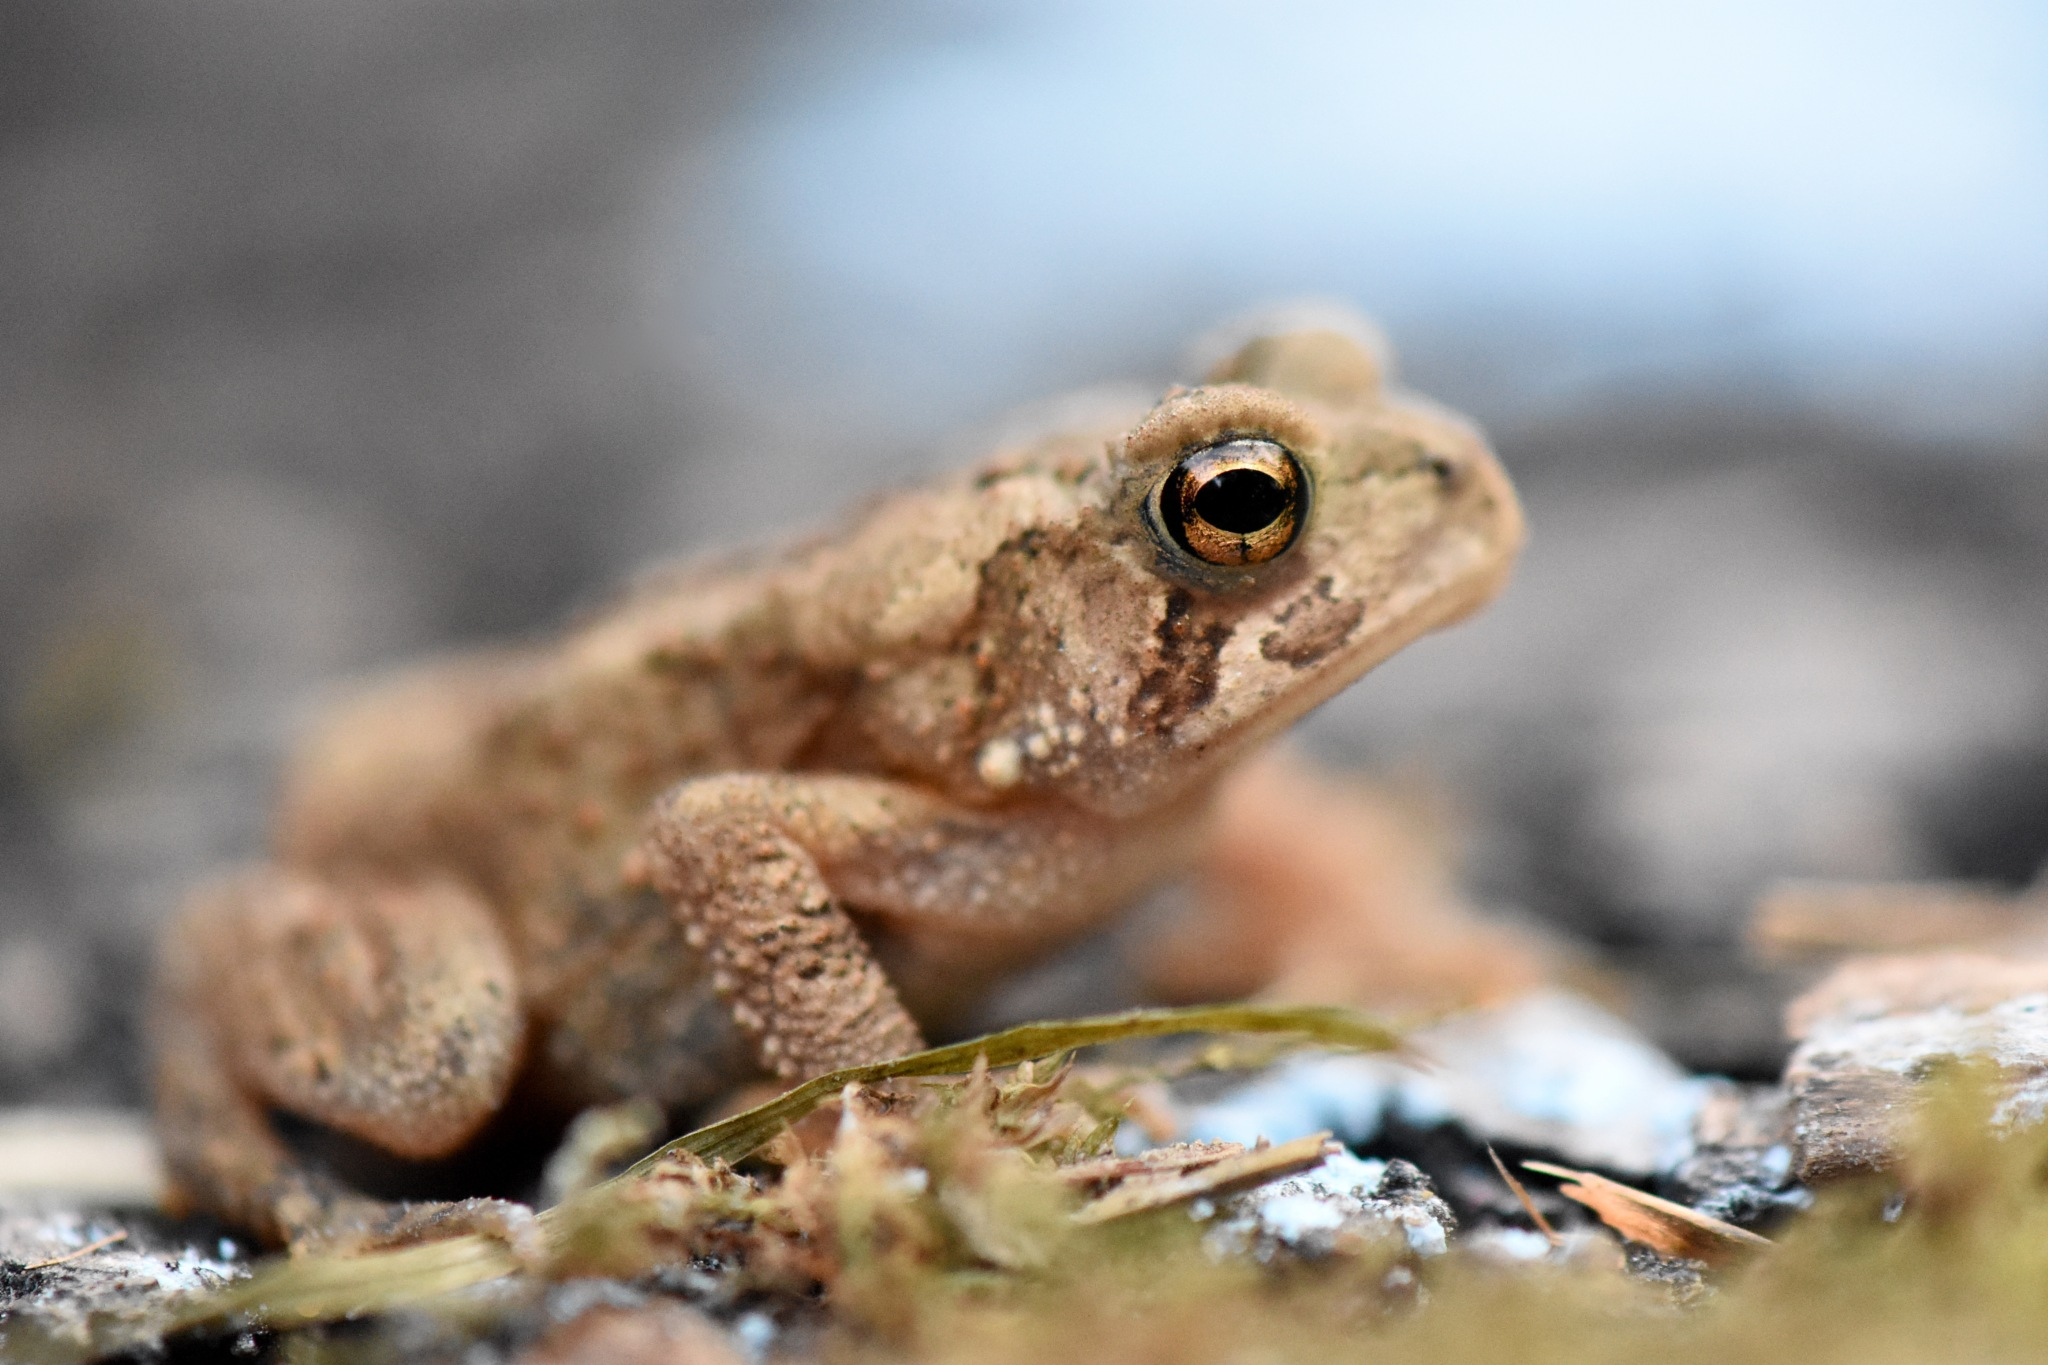 Toad by Marcy Herrick